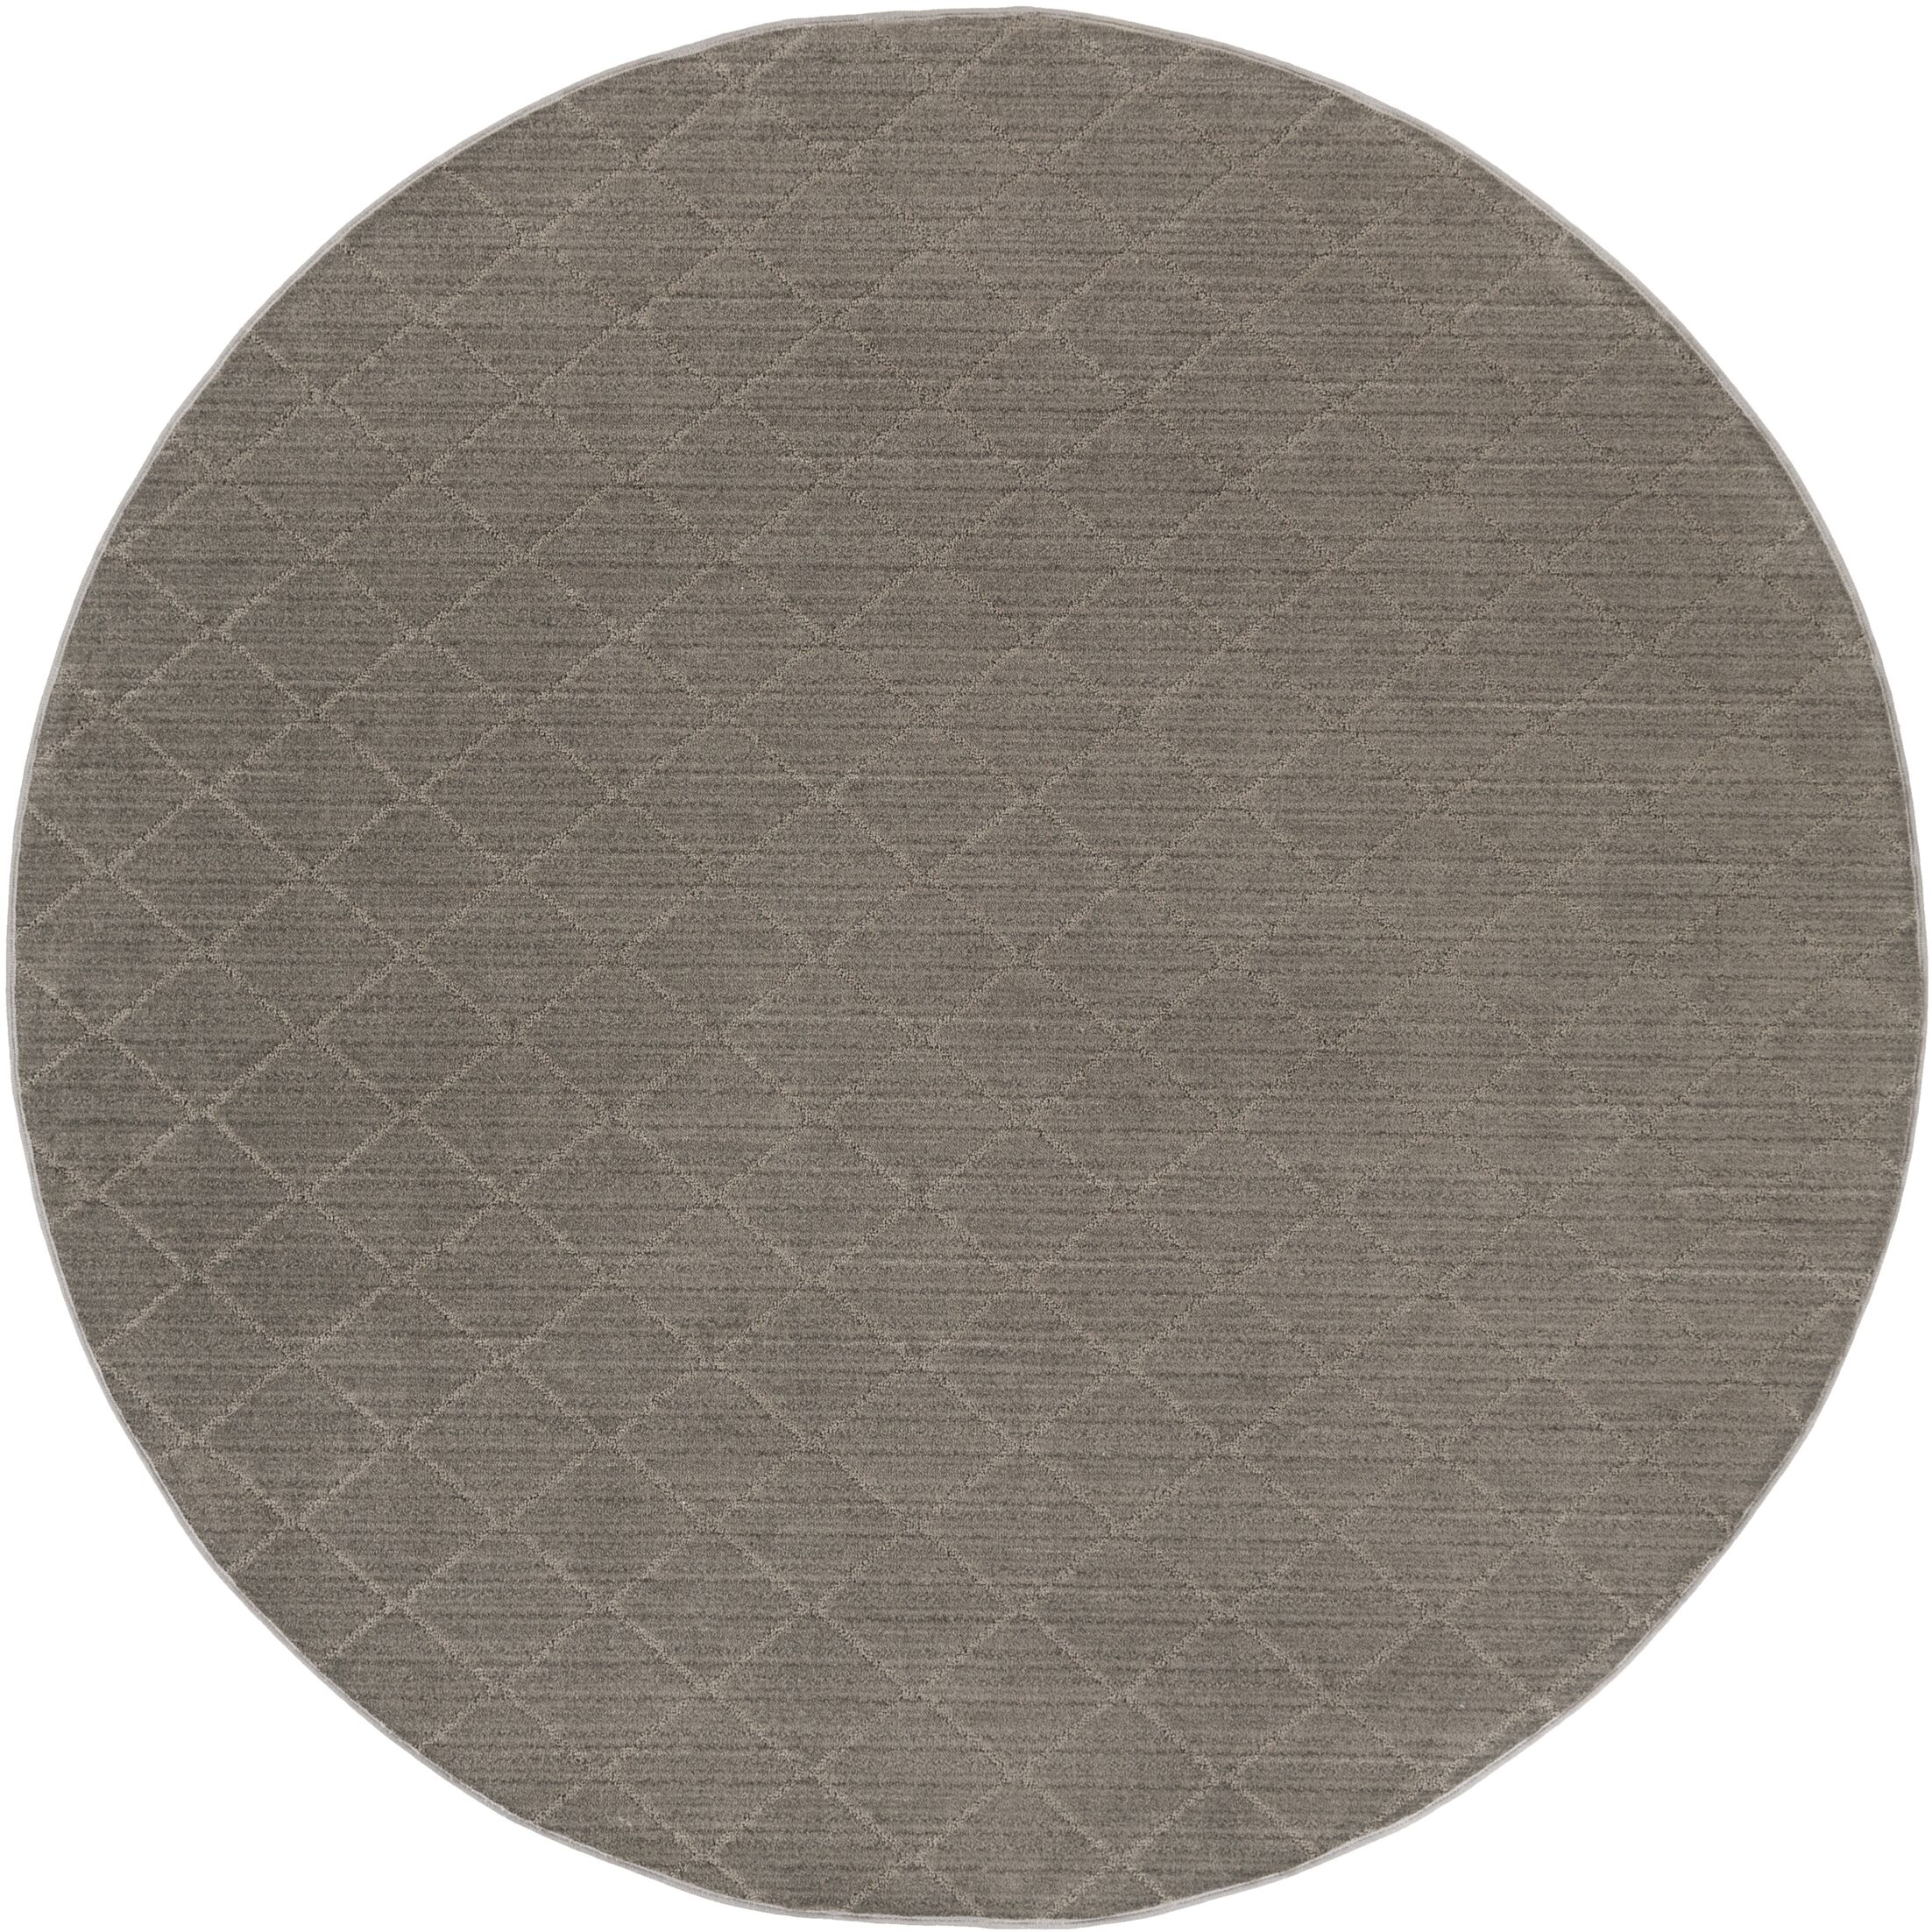 Huxley Gray Area Rug Rug Size: Round 8'